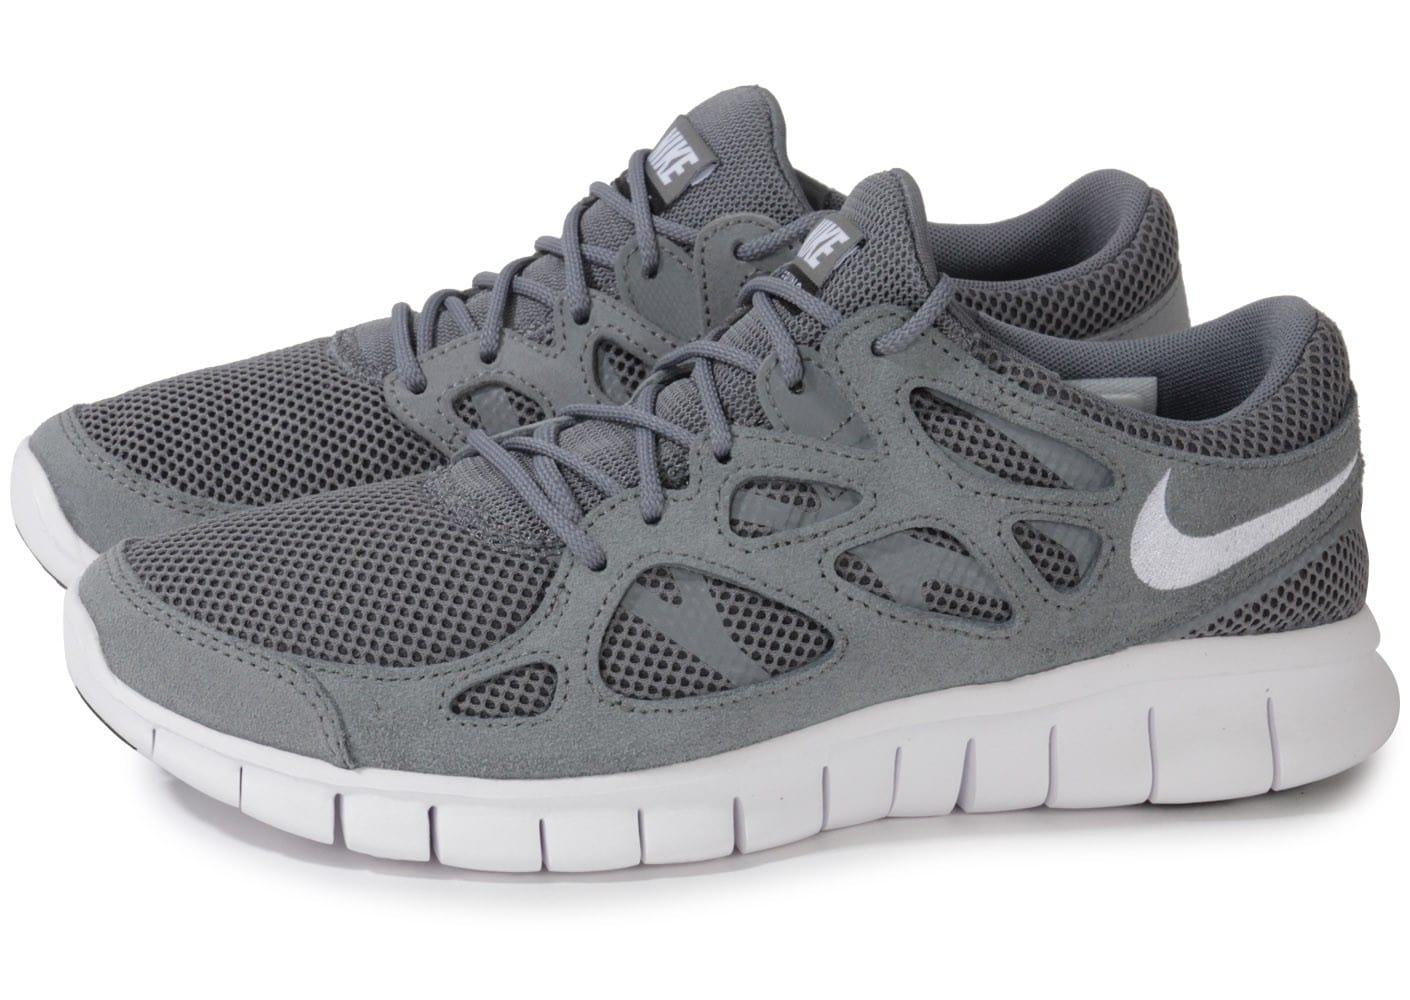 taille 40 f9407 cf95c Nike Free Run 2 Grise - Chaussures Baskets homme - Chausport